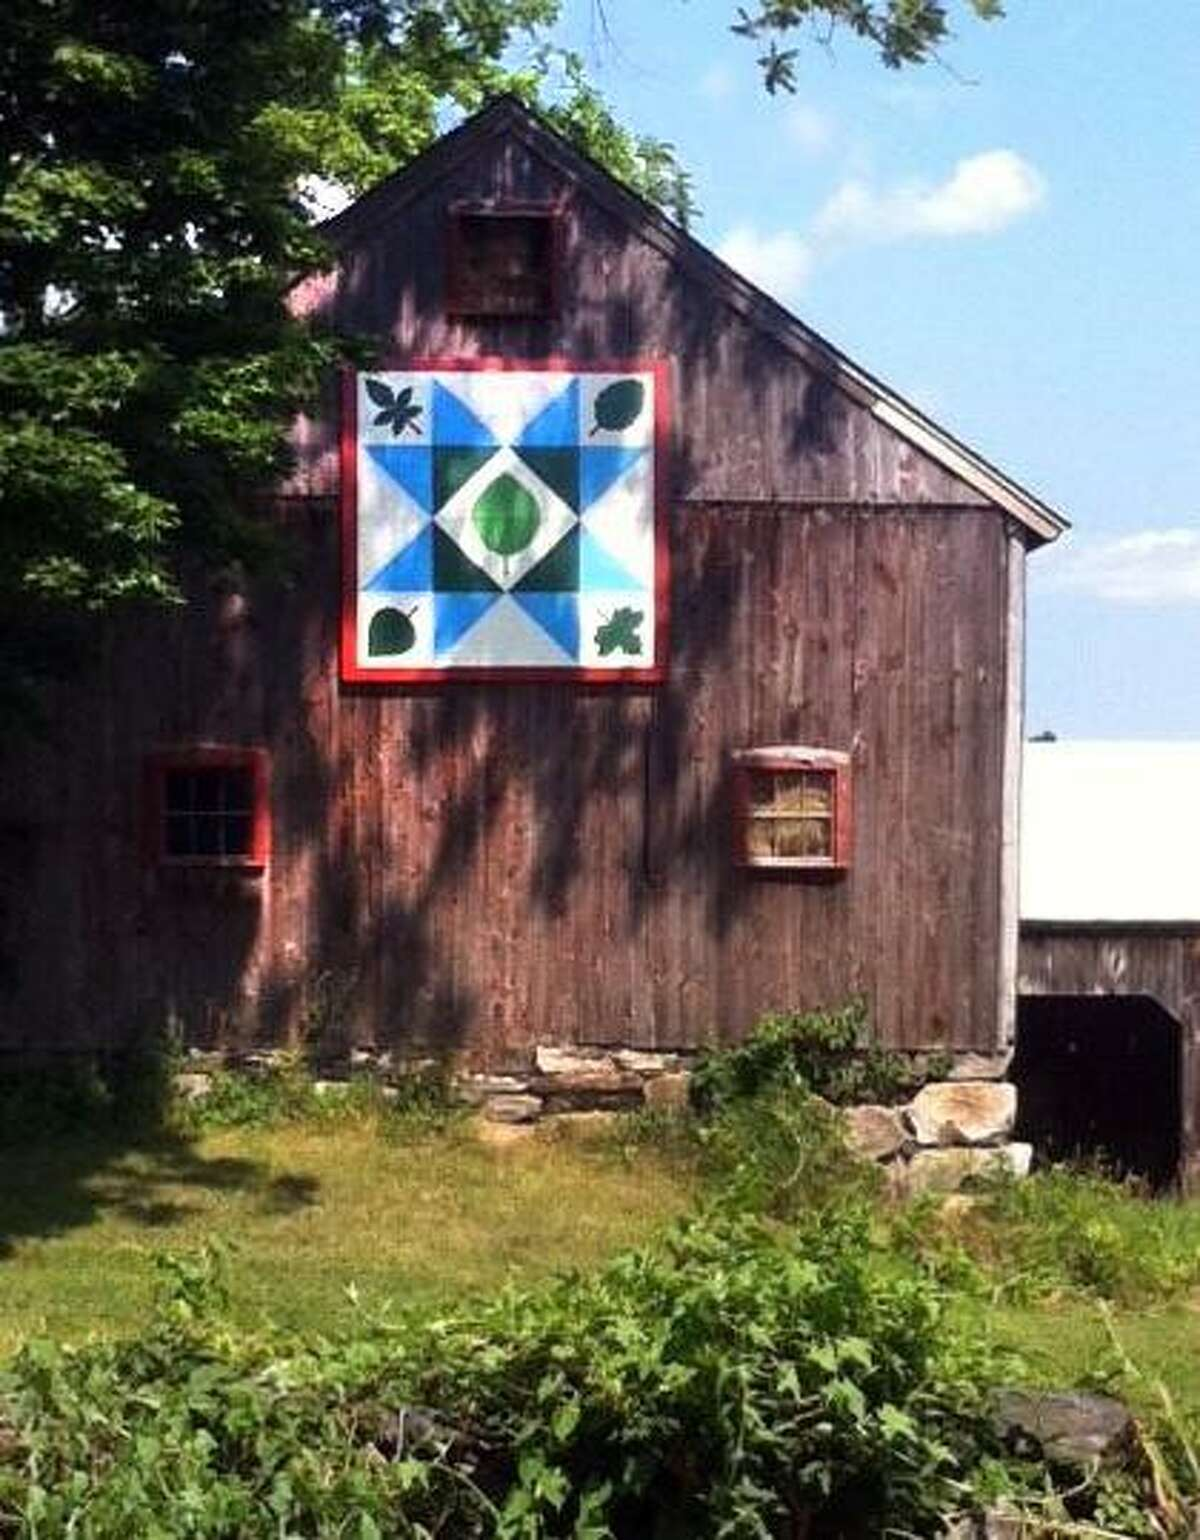 A quilt painting at 173 Ridge Rd in New Milford. New Milford will be the first Connecticut town to have a barn quilt trail - several barns with quiltlike painted patches on walls. The point of the endeavor is to bring attention to folk art and the towns agricultural roots.